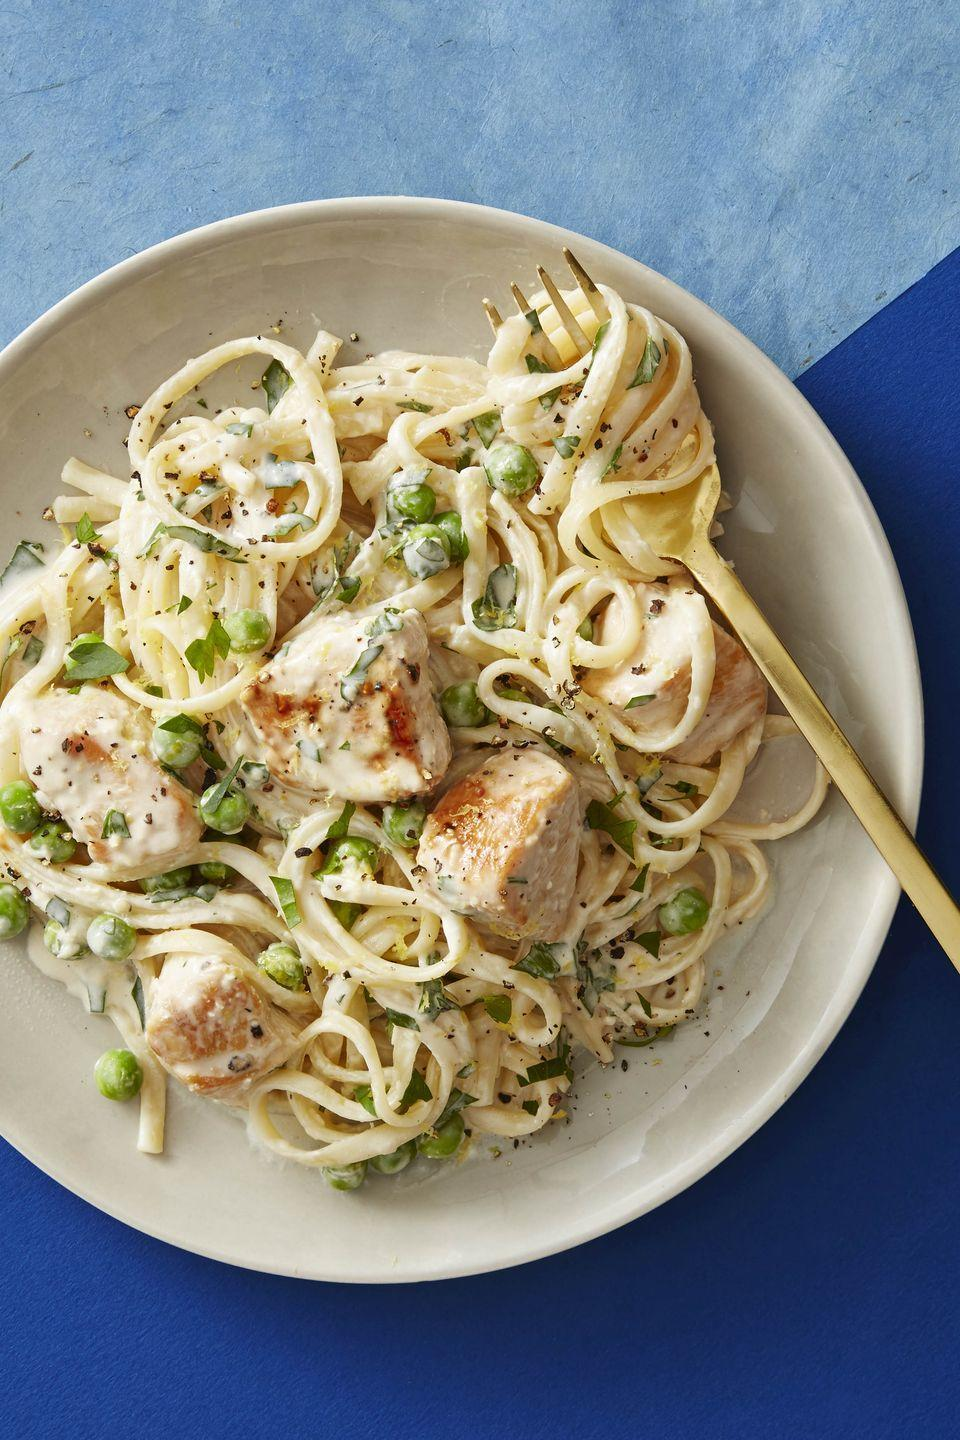 """<p>Low-fat cream cheese adds flavor without a lot of fat to this hearty pasta.</p><p><em><a href=""""https://www.goodhousekeeping.com/food-recipes/easy/a47534/creamy-lemon-chicken-pasta-recipe/"""" rel=""""nofollow noopener"""" target=""""_blank"""" data-ylk=""""slk:Get the recipe for Creamy Lemon Chicken Pasta »"""" class=""""link rapid-noclick-resp"""">Get the recipe for Creamy Lemon Chicken Pasta »</a></em></p>"""